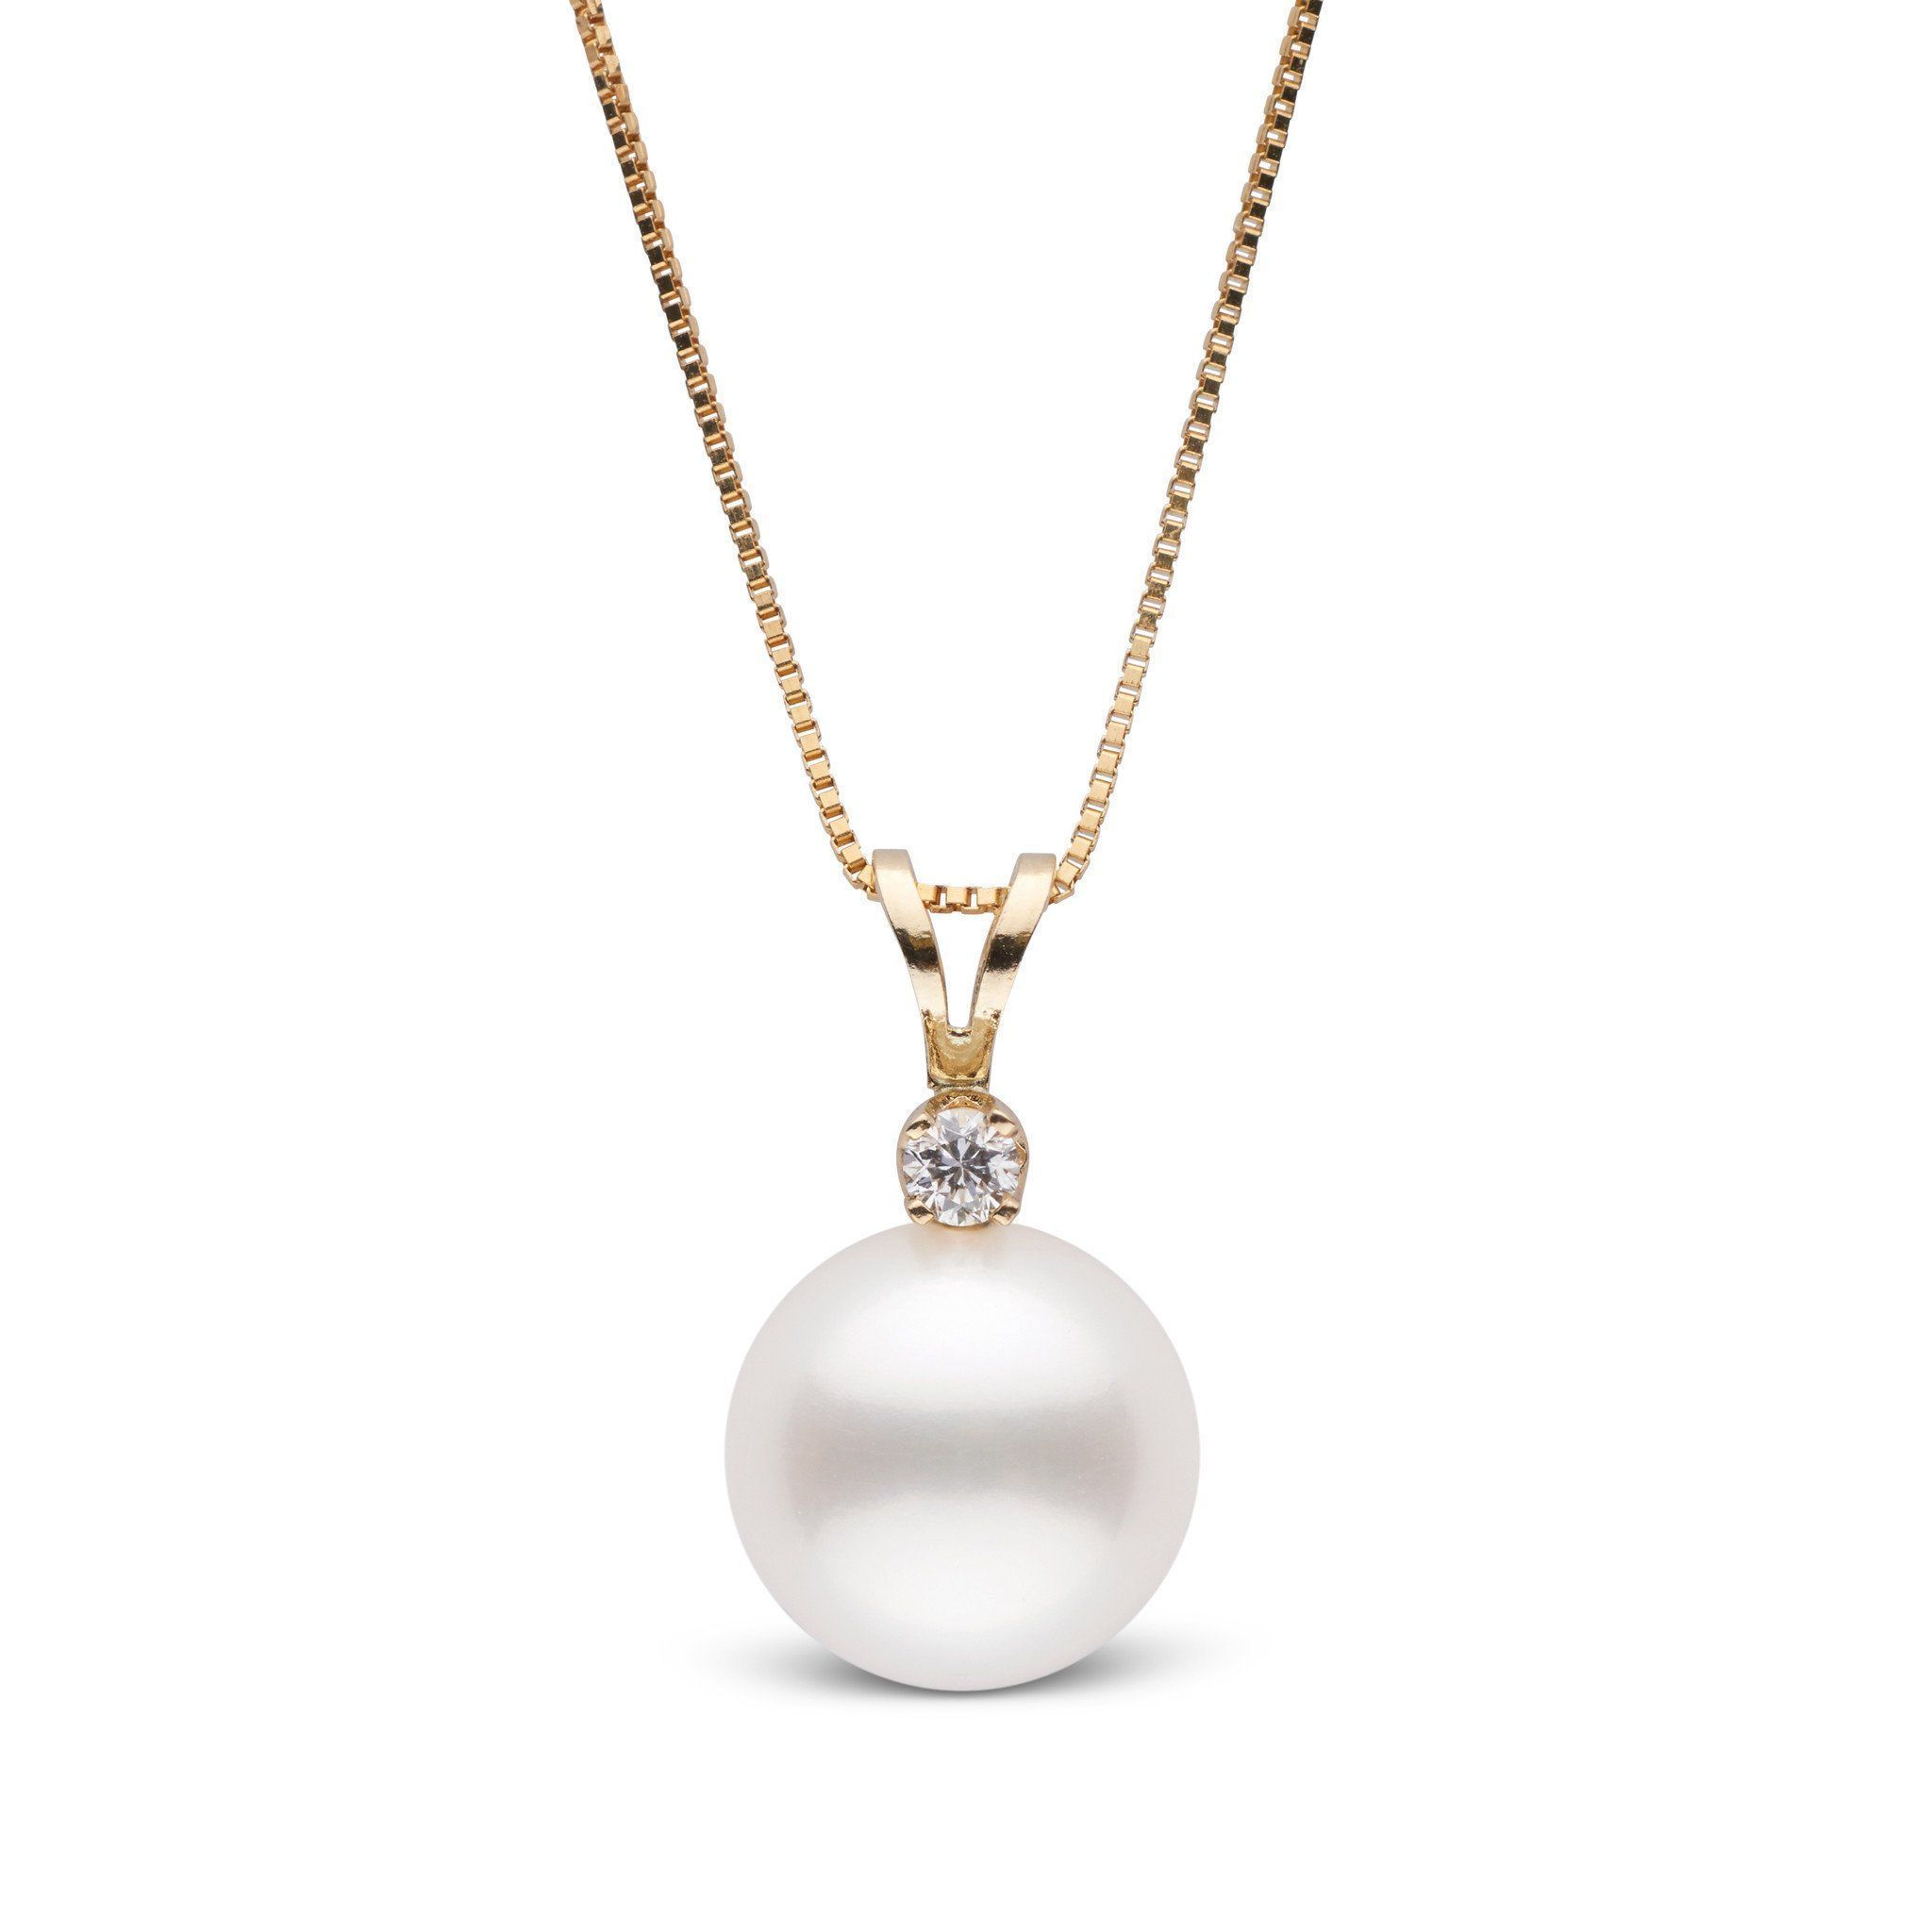 Harmony Collection 10.0-11.0 mm Freshadama Freshwater Pearl & Diamond Pendant